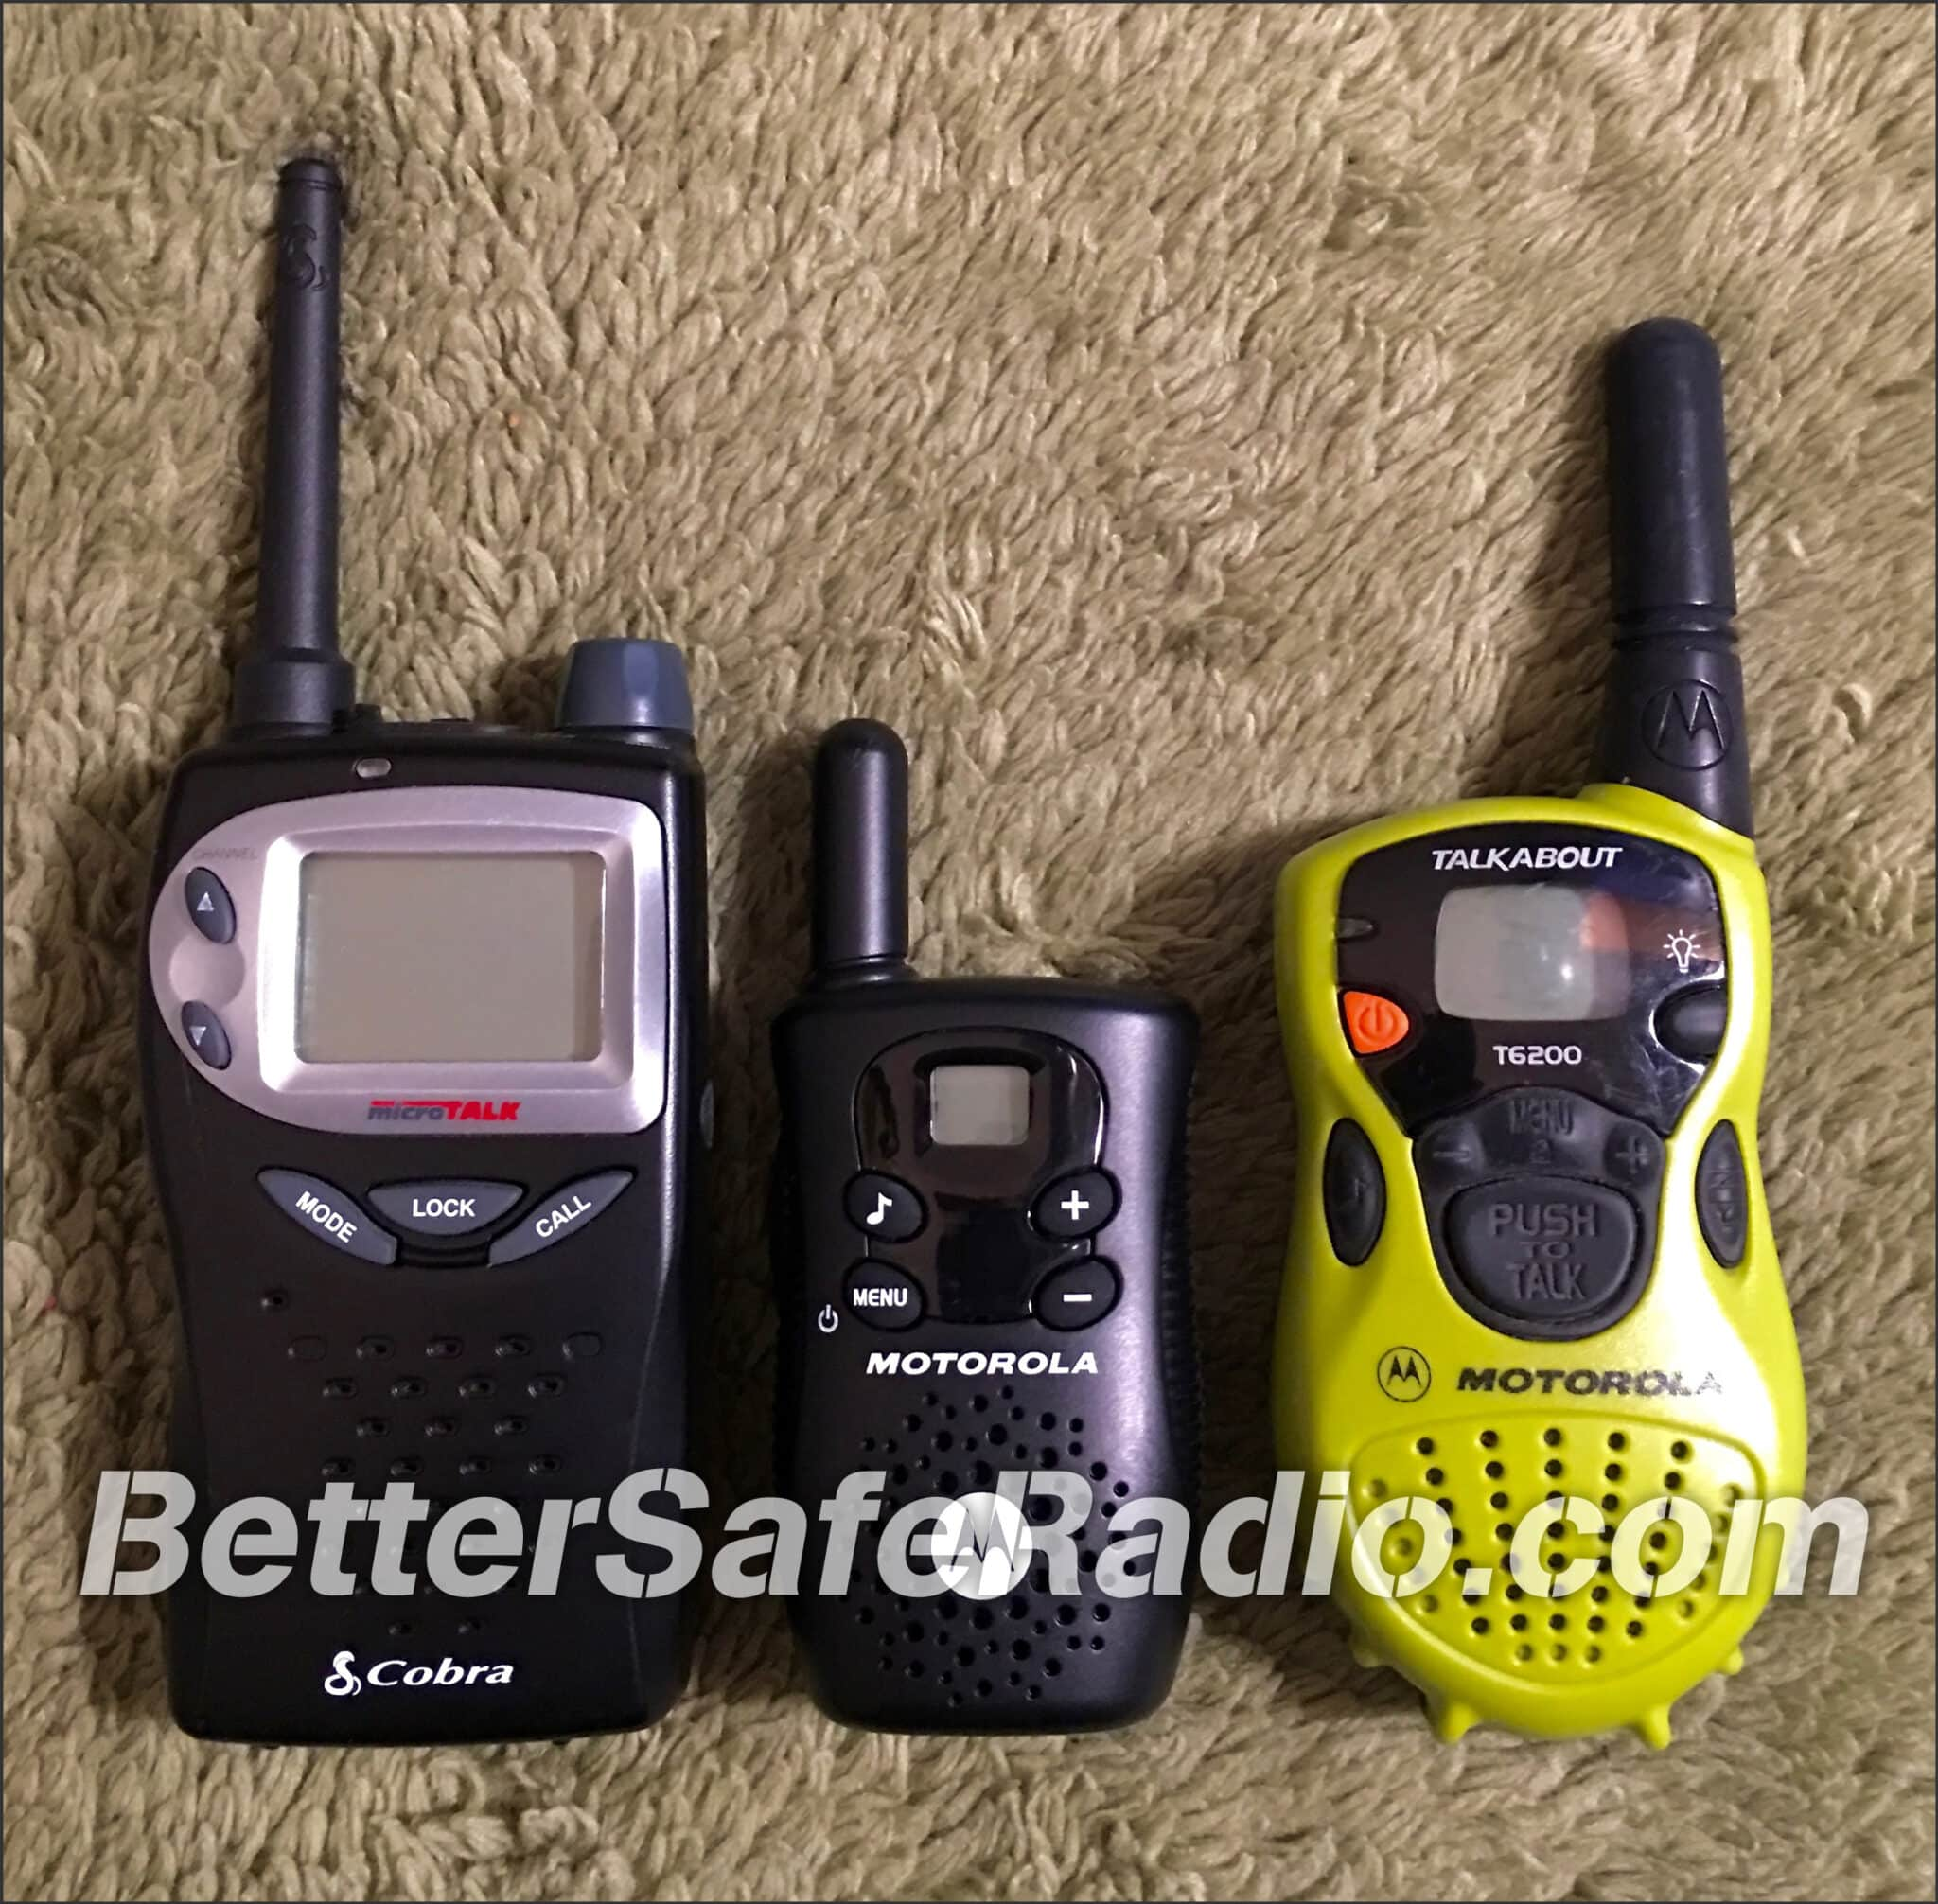 Typical FRS Radios